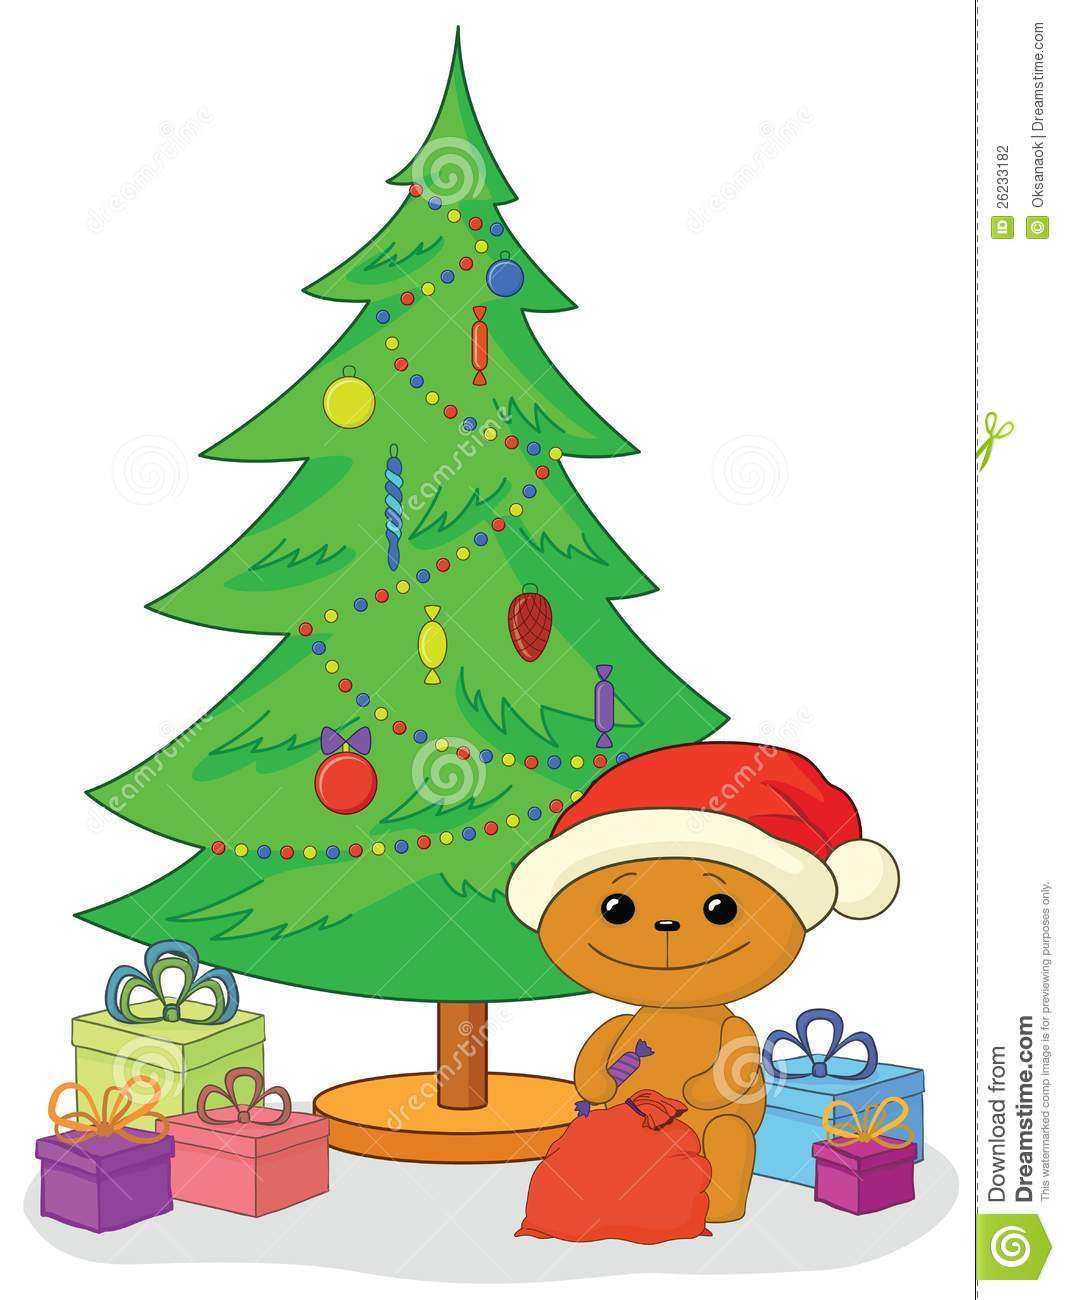 Presents Under The Christmas Tree: Teddy Bear, Gifts And Christmas Tree Stock Photography